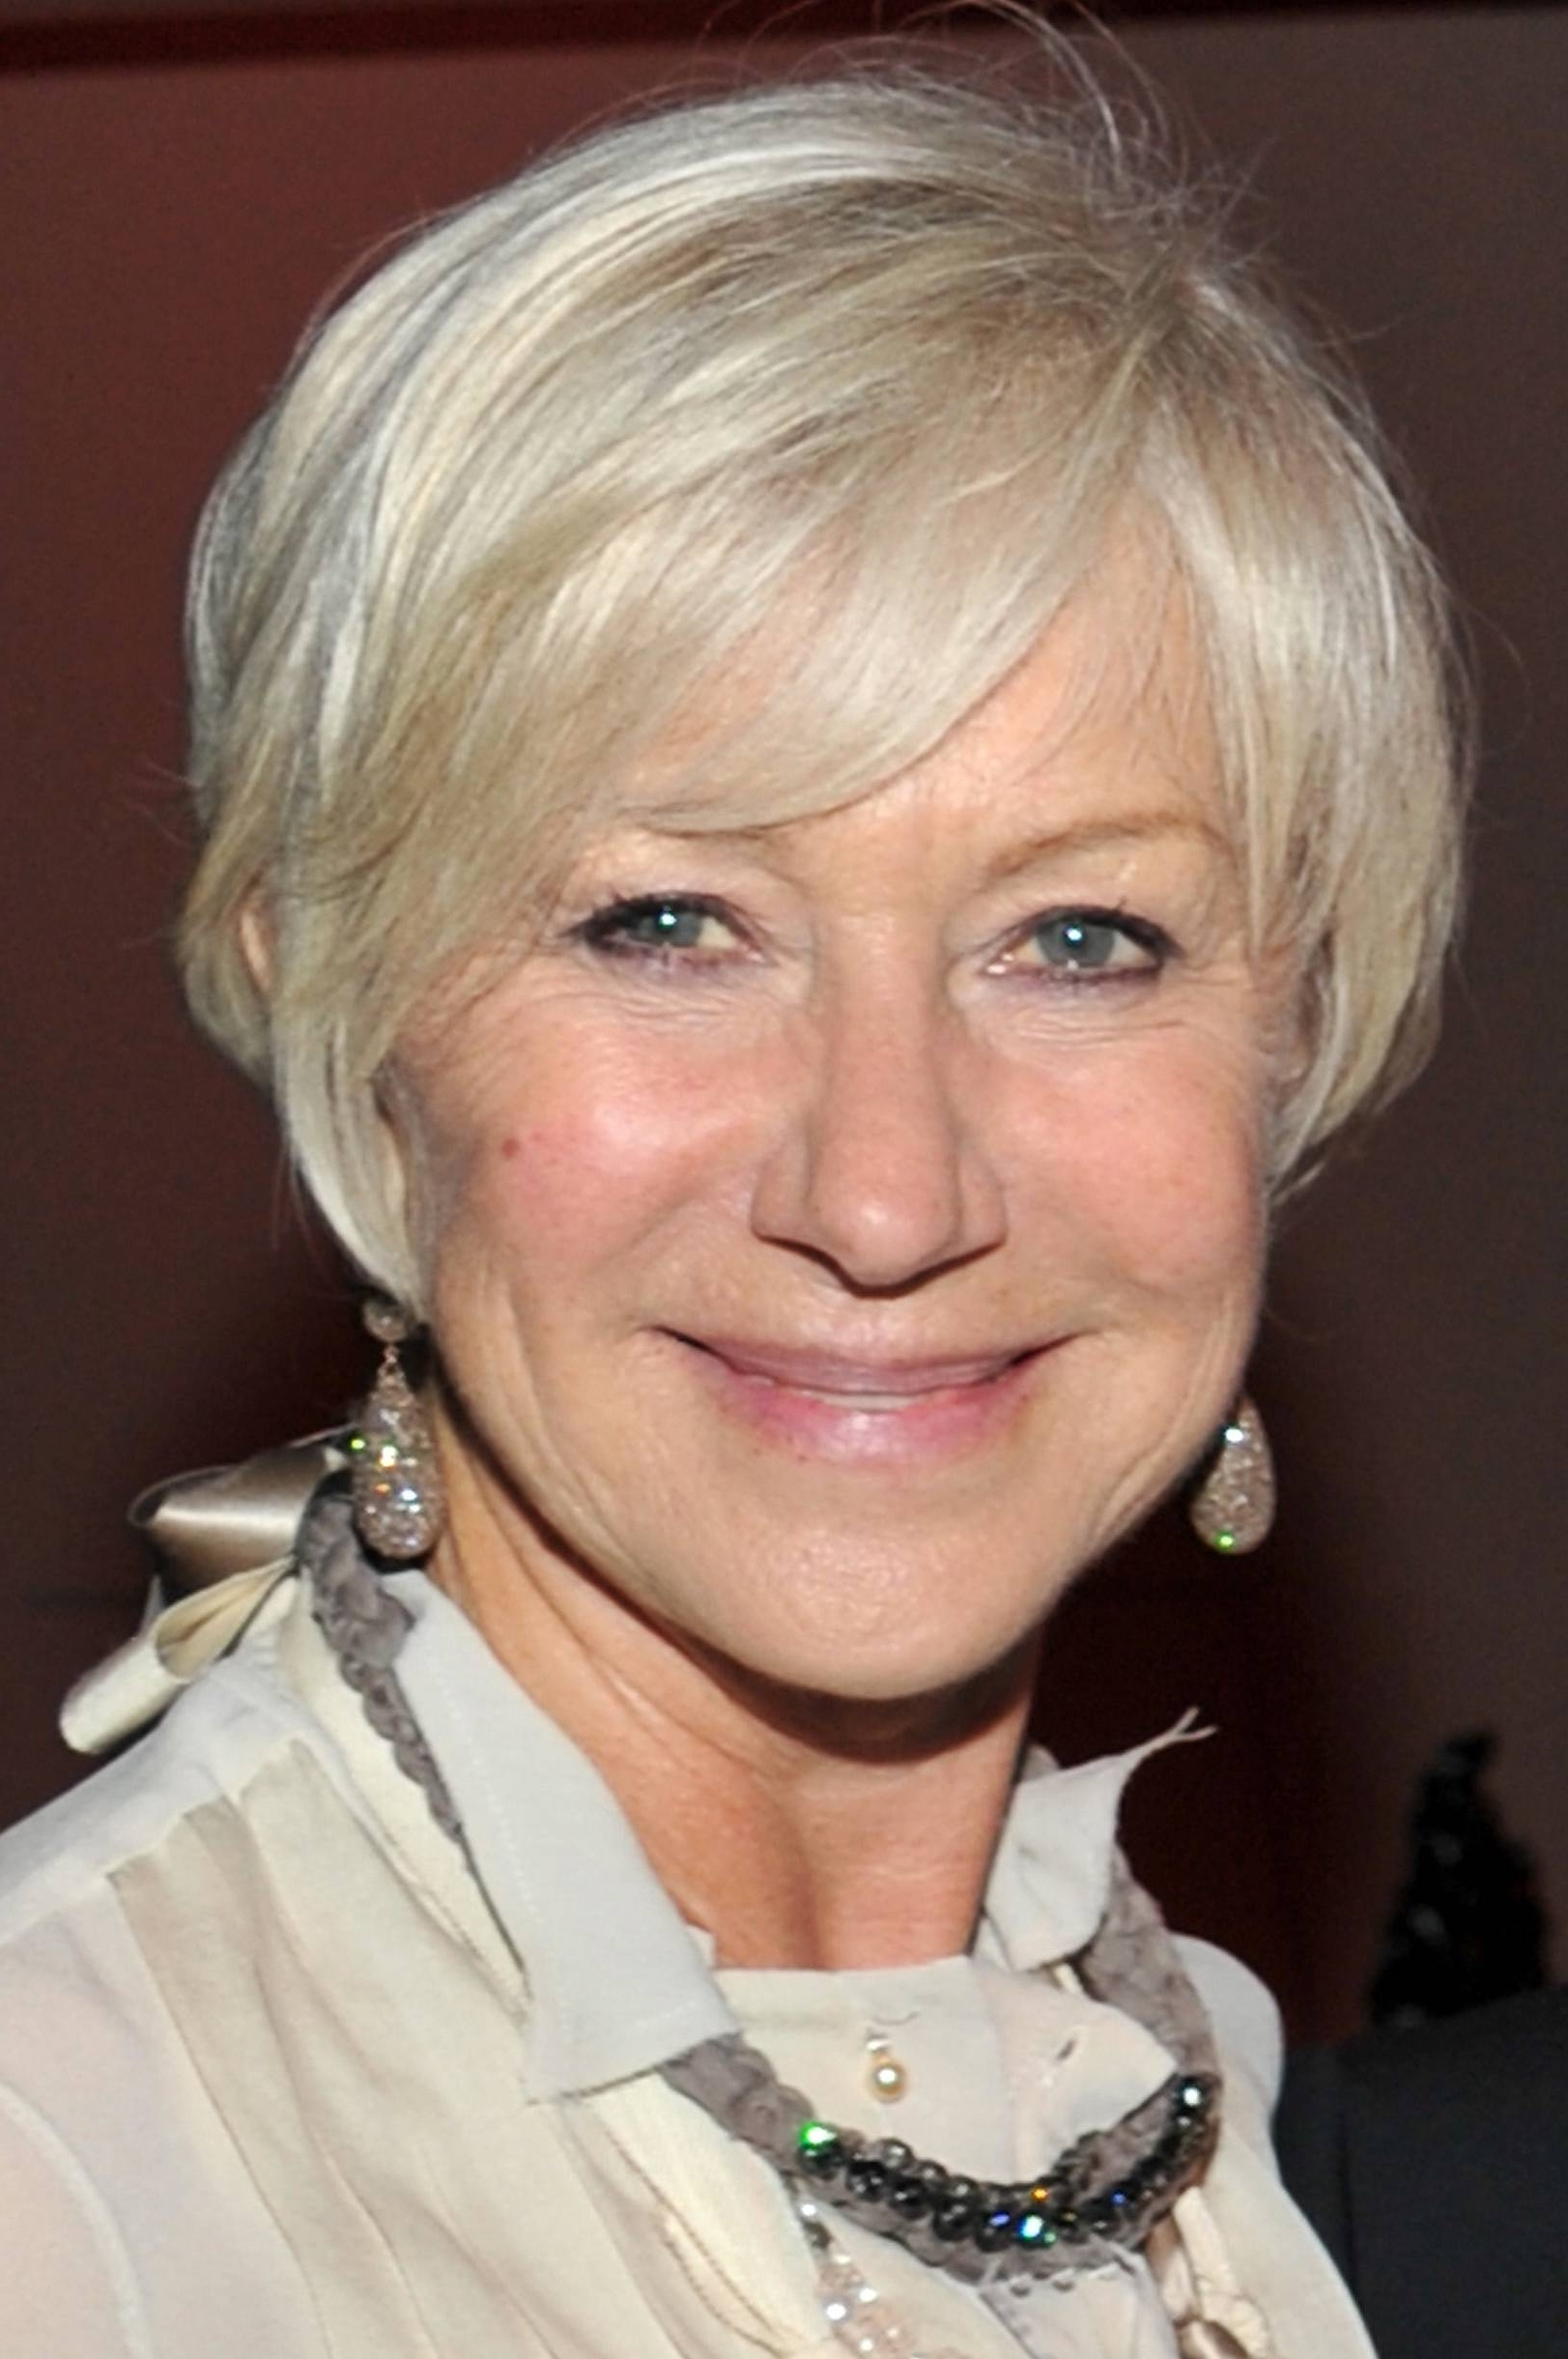 Short Hairstyles Grey Hair – Hairstyle For Women & Man Pertaining To Latest Gray Hair Pixie Hairstyles (View 13 of 15)